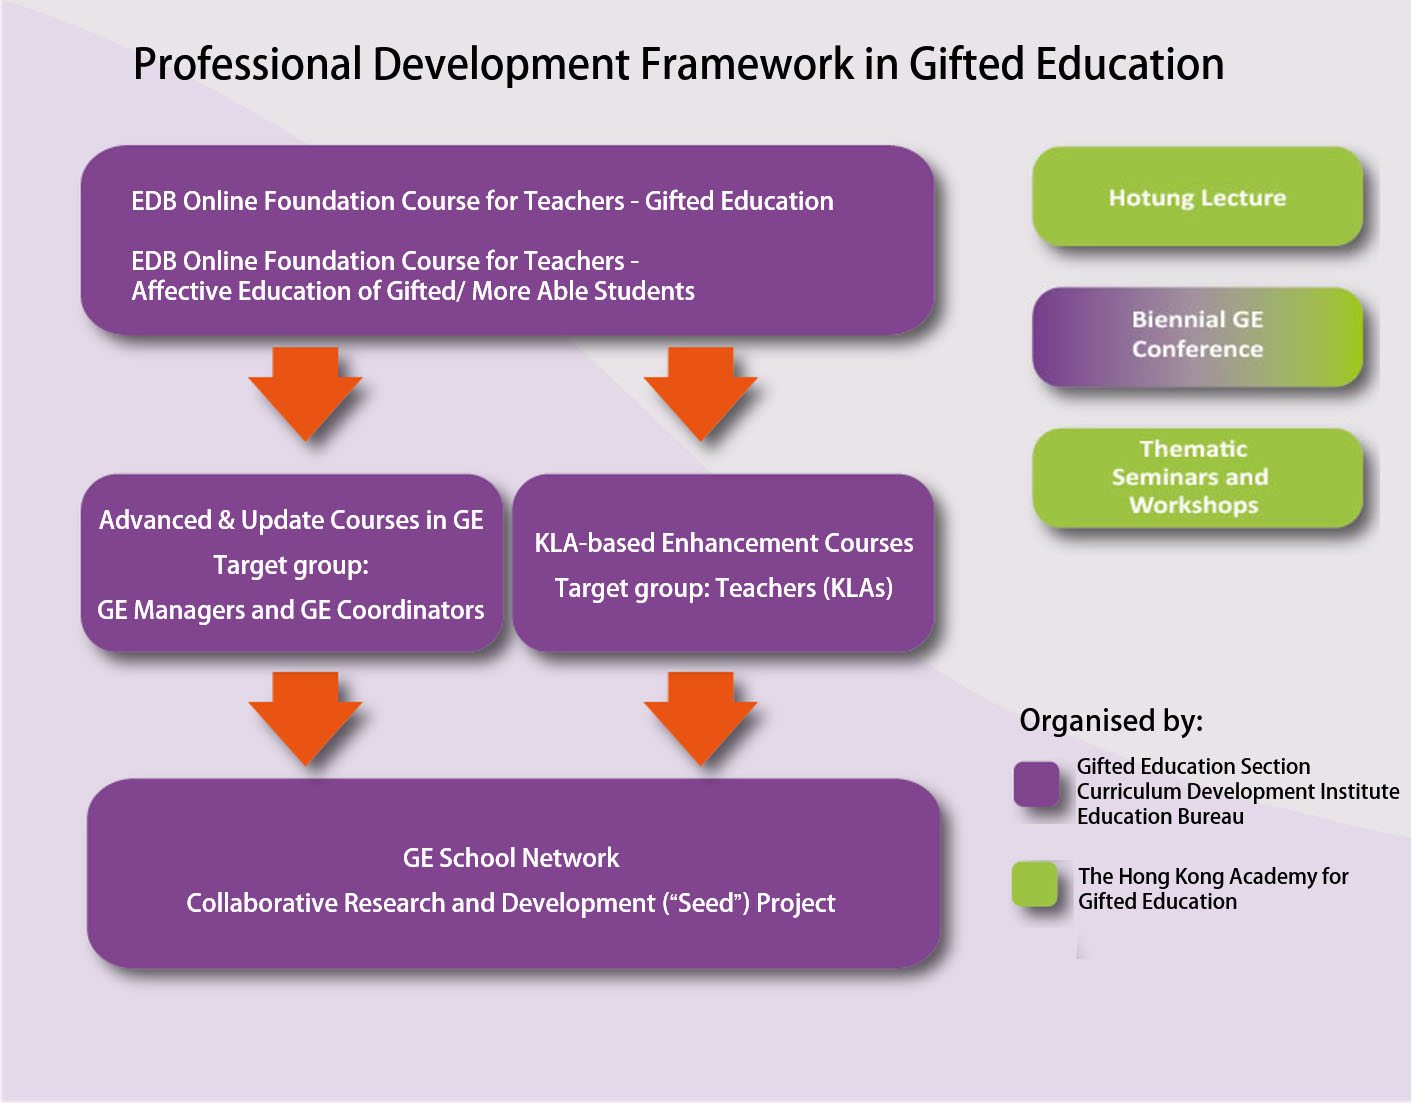 New PD Framework